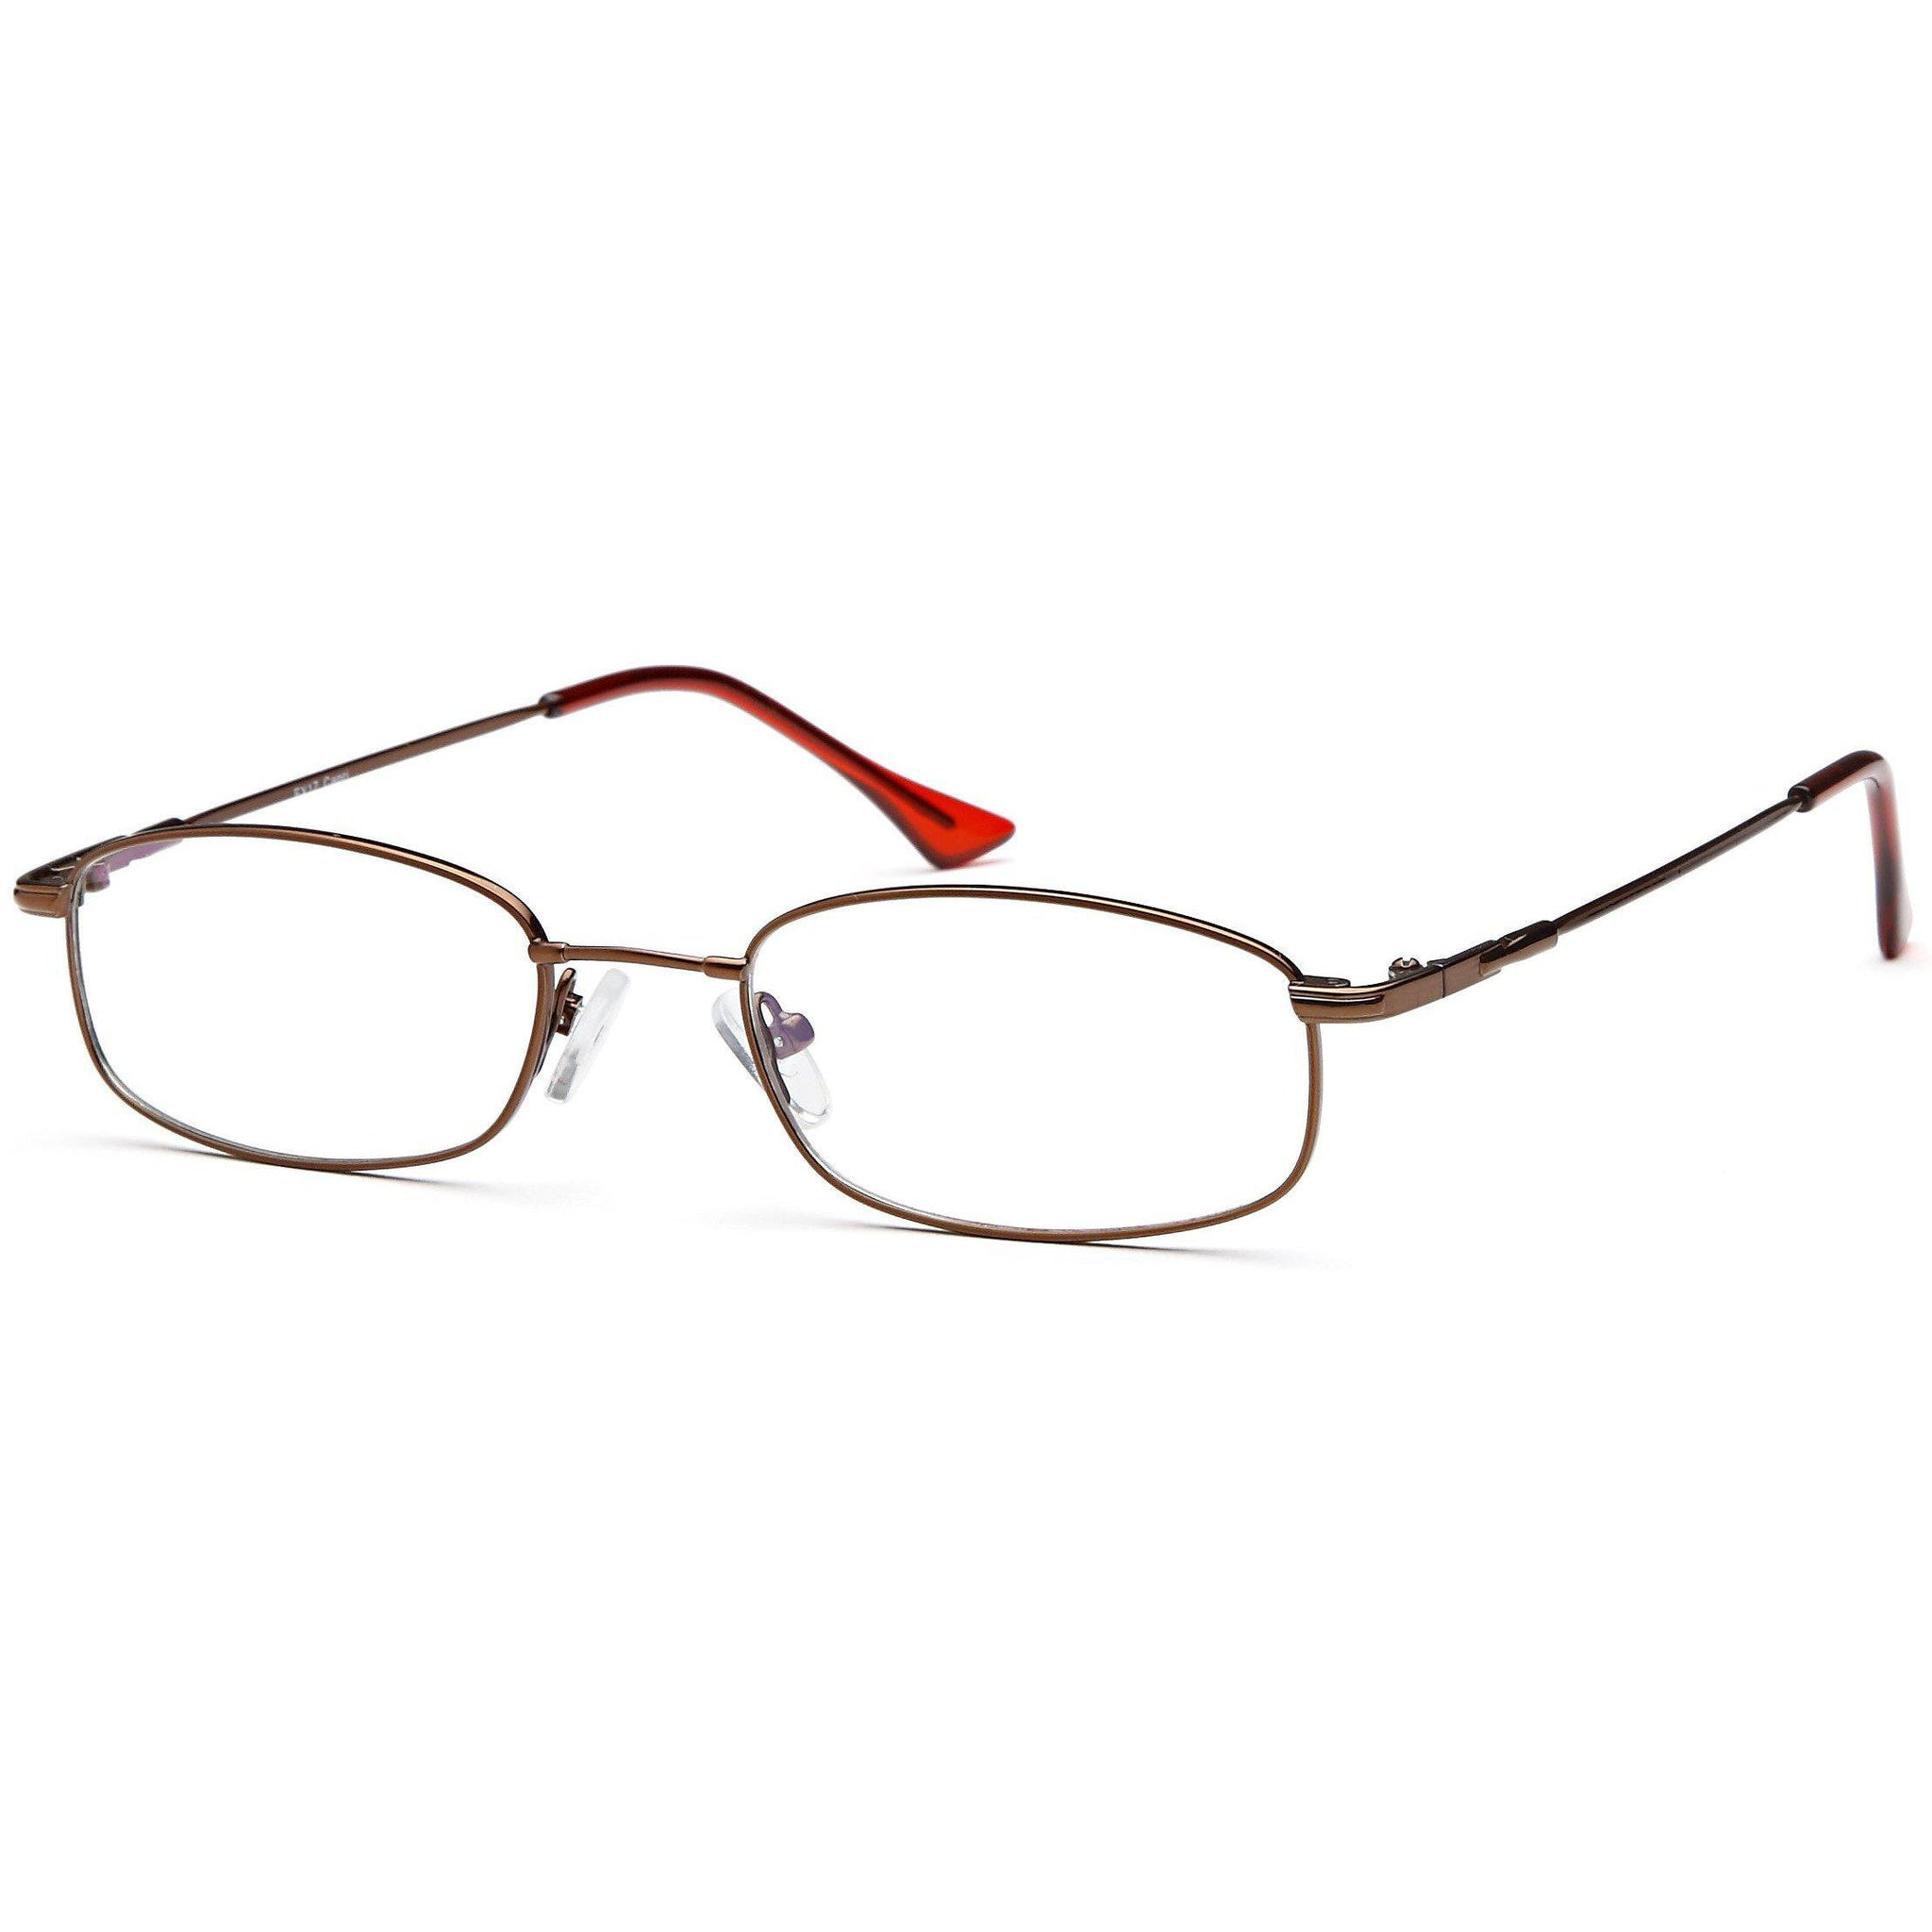 Titanium Prescription Glasses FX 17 Eyeglasses Frame